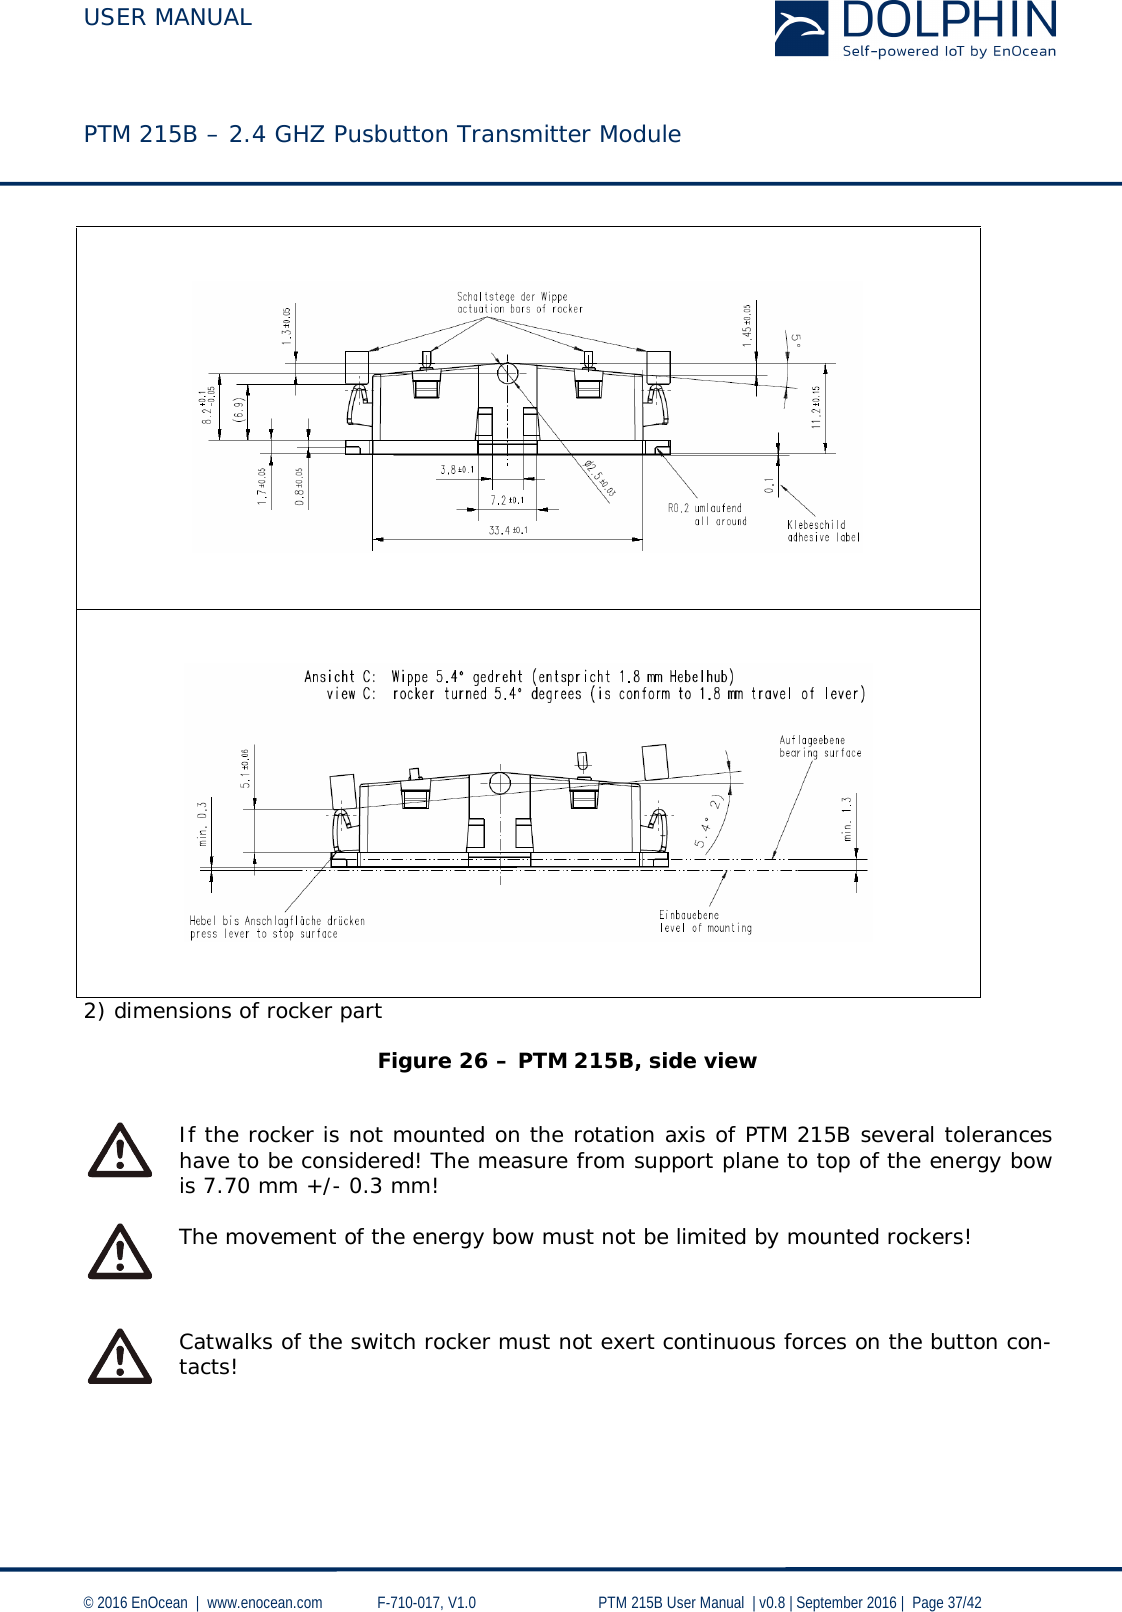 USER MANUAL    PTM 215B – 2.4 GHZ Pusbutton Transmitter Module  © 2016 EnOcean     www.enocean.com   F-710-017, V1.0        PTM 215B User Manual    v0.8   September 2016    Page 37/42        2) dimensions of rocker part  Figure 26 – PTM 215B, side view    If the rocker is not mounted on the rotation axis of PTM 215B several tolerances have to be considered! The measure from support plane to top of the energy bow is 7.70 mm +/- 0.3 mm!   The movement of the energy bow must not be limited by mounted rockers!    Catwalks of the switch rocker must not exert continuous forces on the button con-tacts!